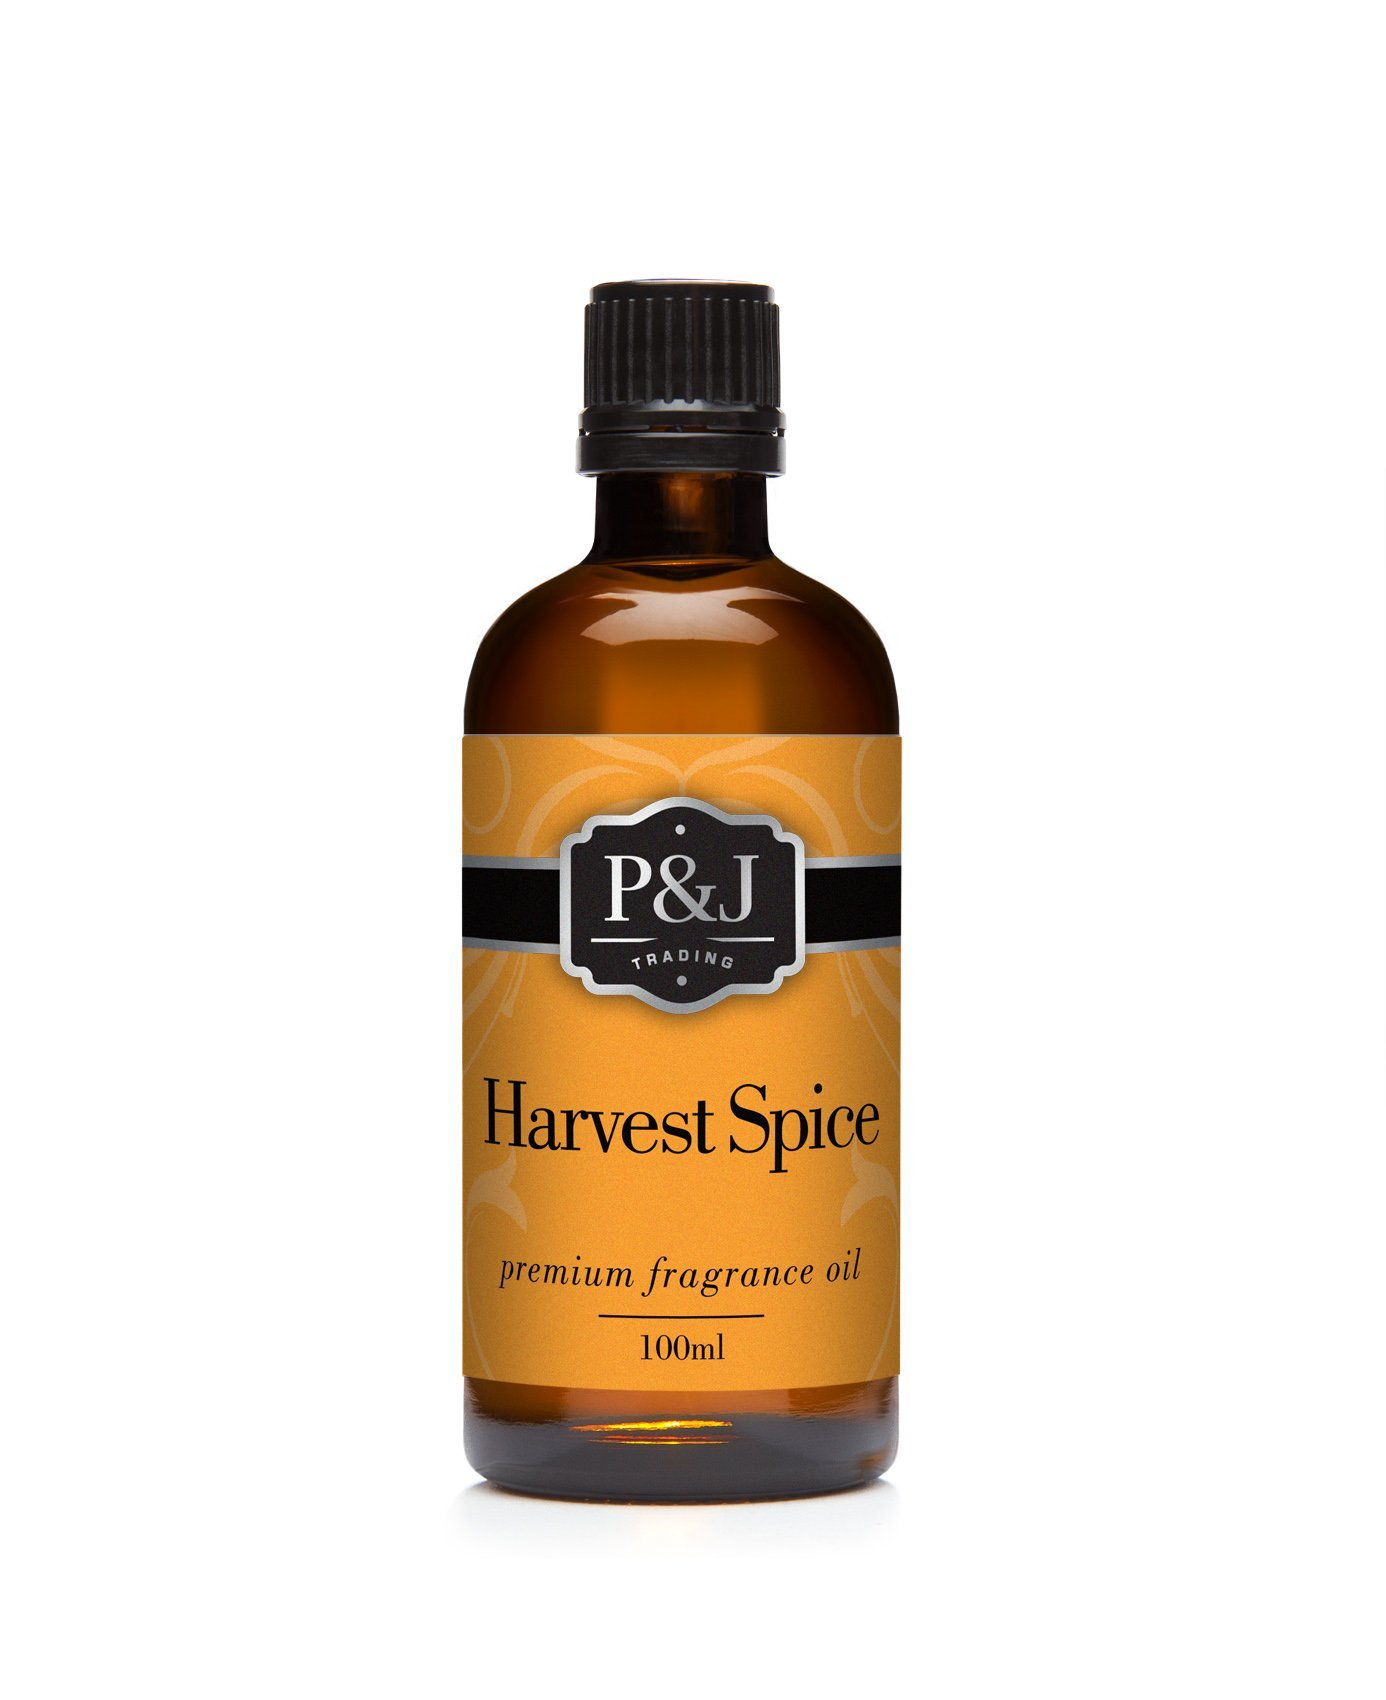 Harvest Spice Fragrance Oil - Premium Grade Scented Oil - 100ml/3.3oz